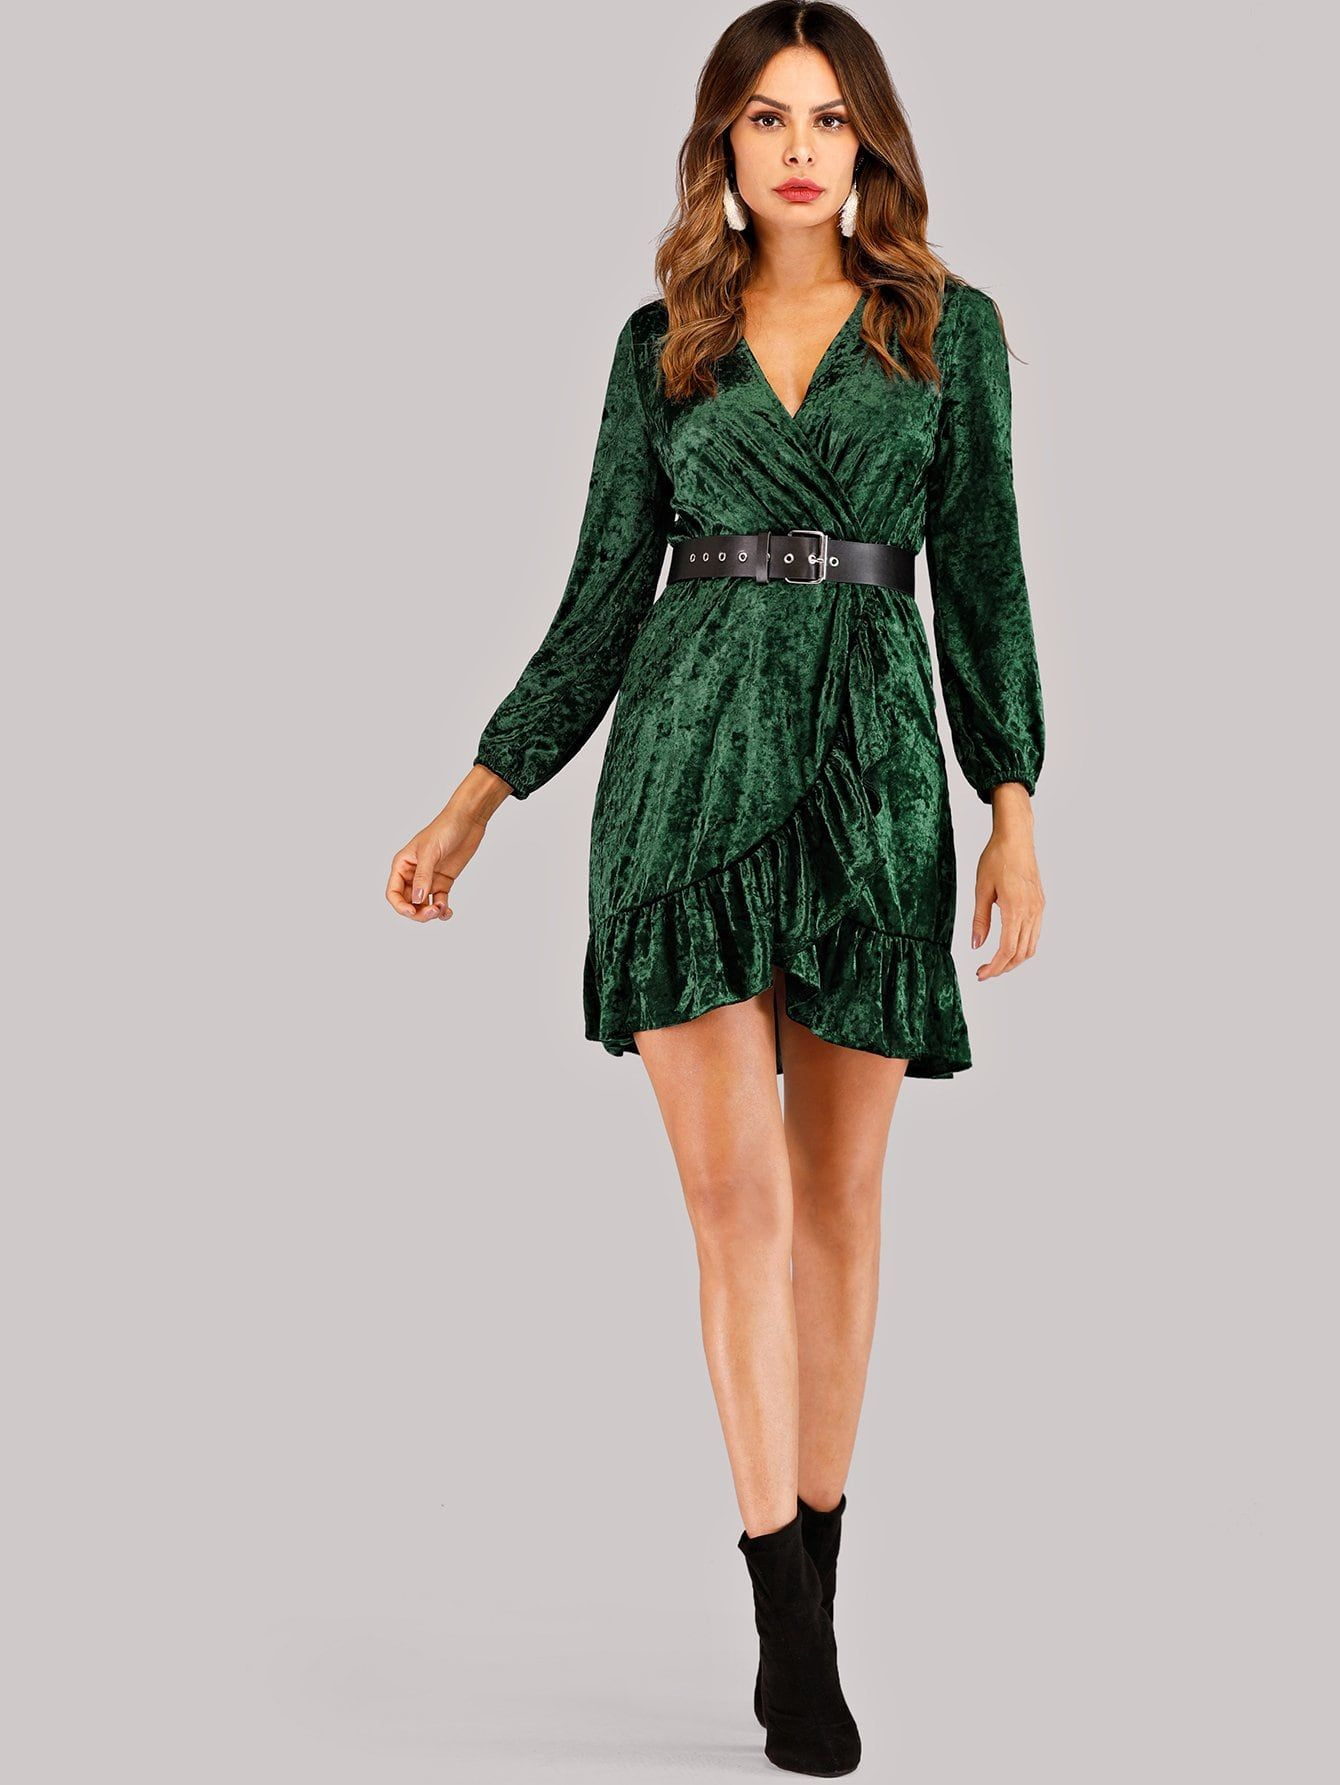 4c7a12c19c55 Elegant Wrap and Belted Plain Shift Trapeze V Neck Long Sleeve High Waist  Green Short Length Self Tie Waist Wrap Dress with Belt